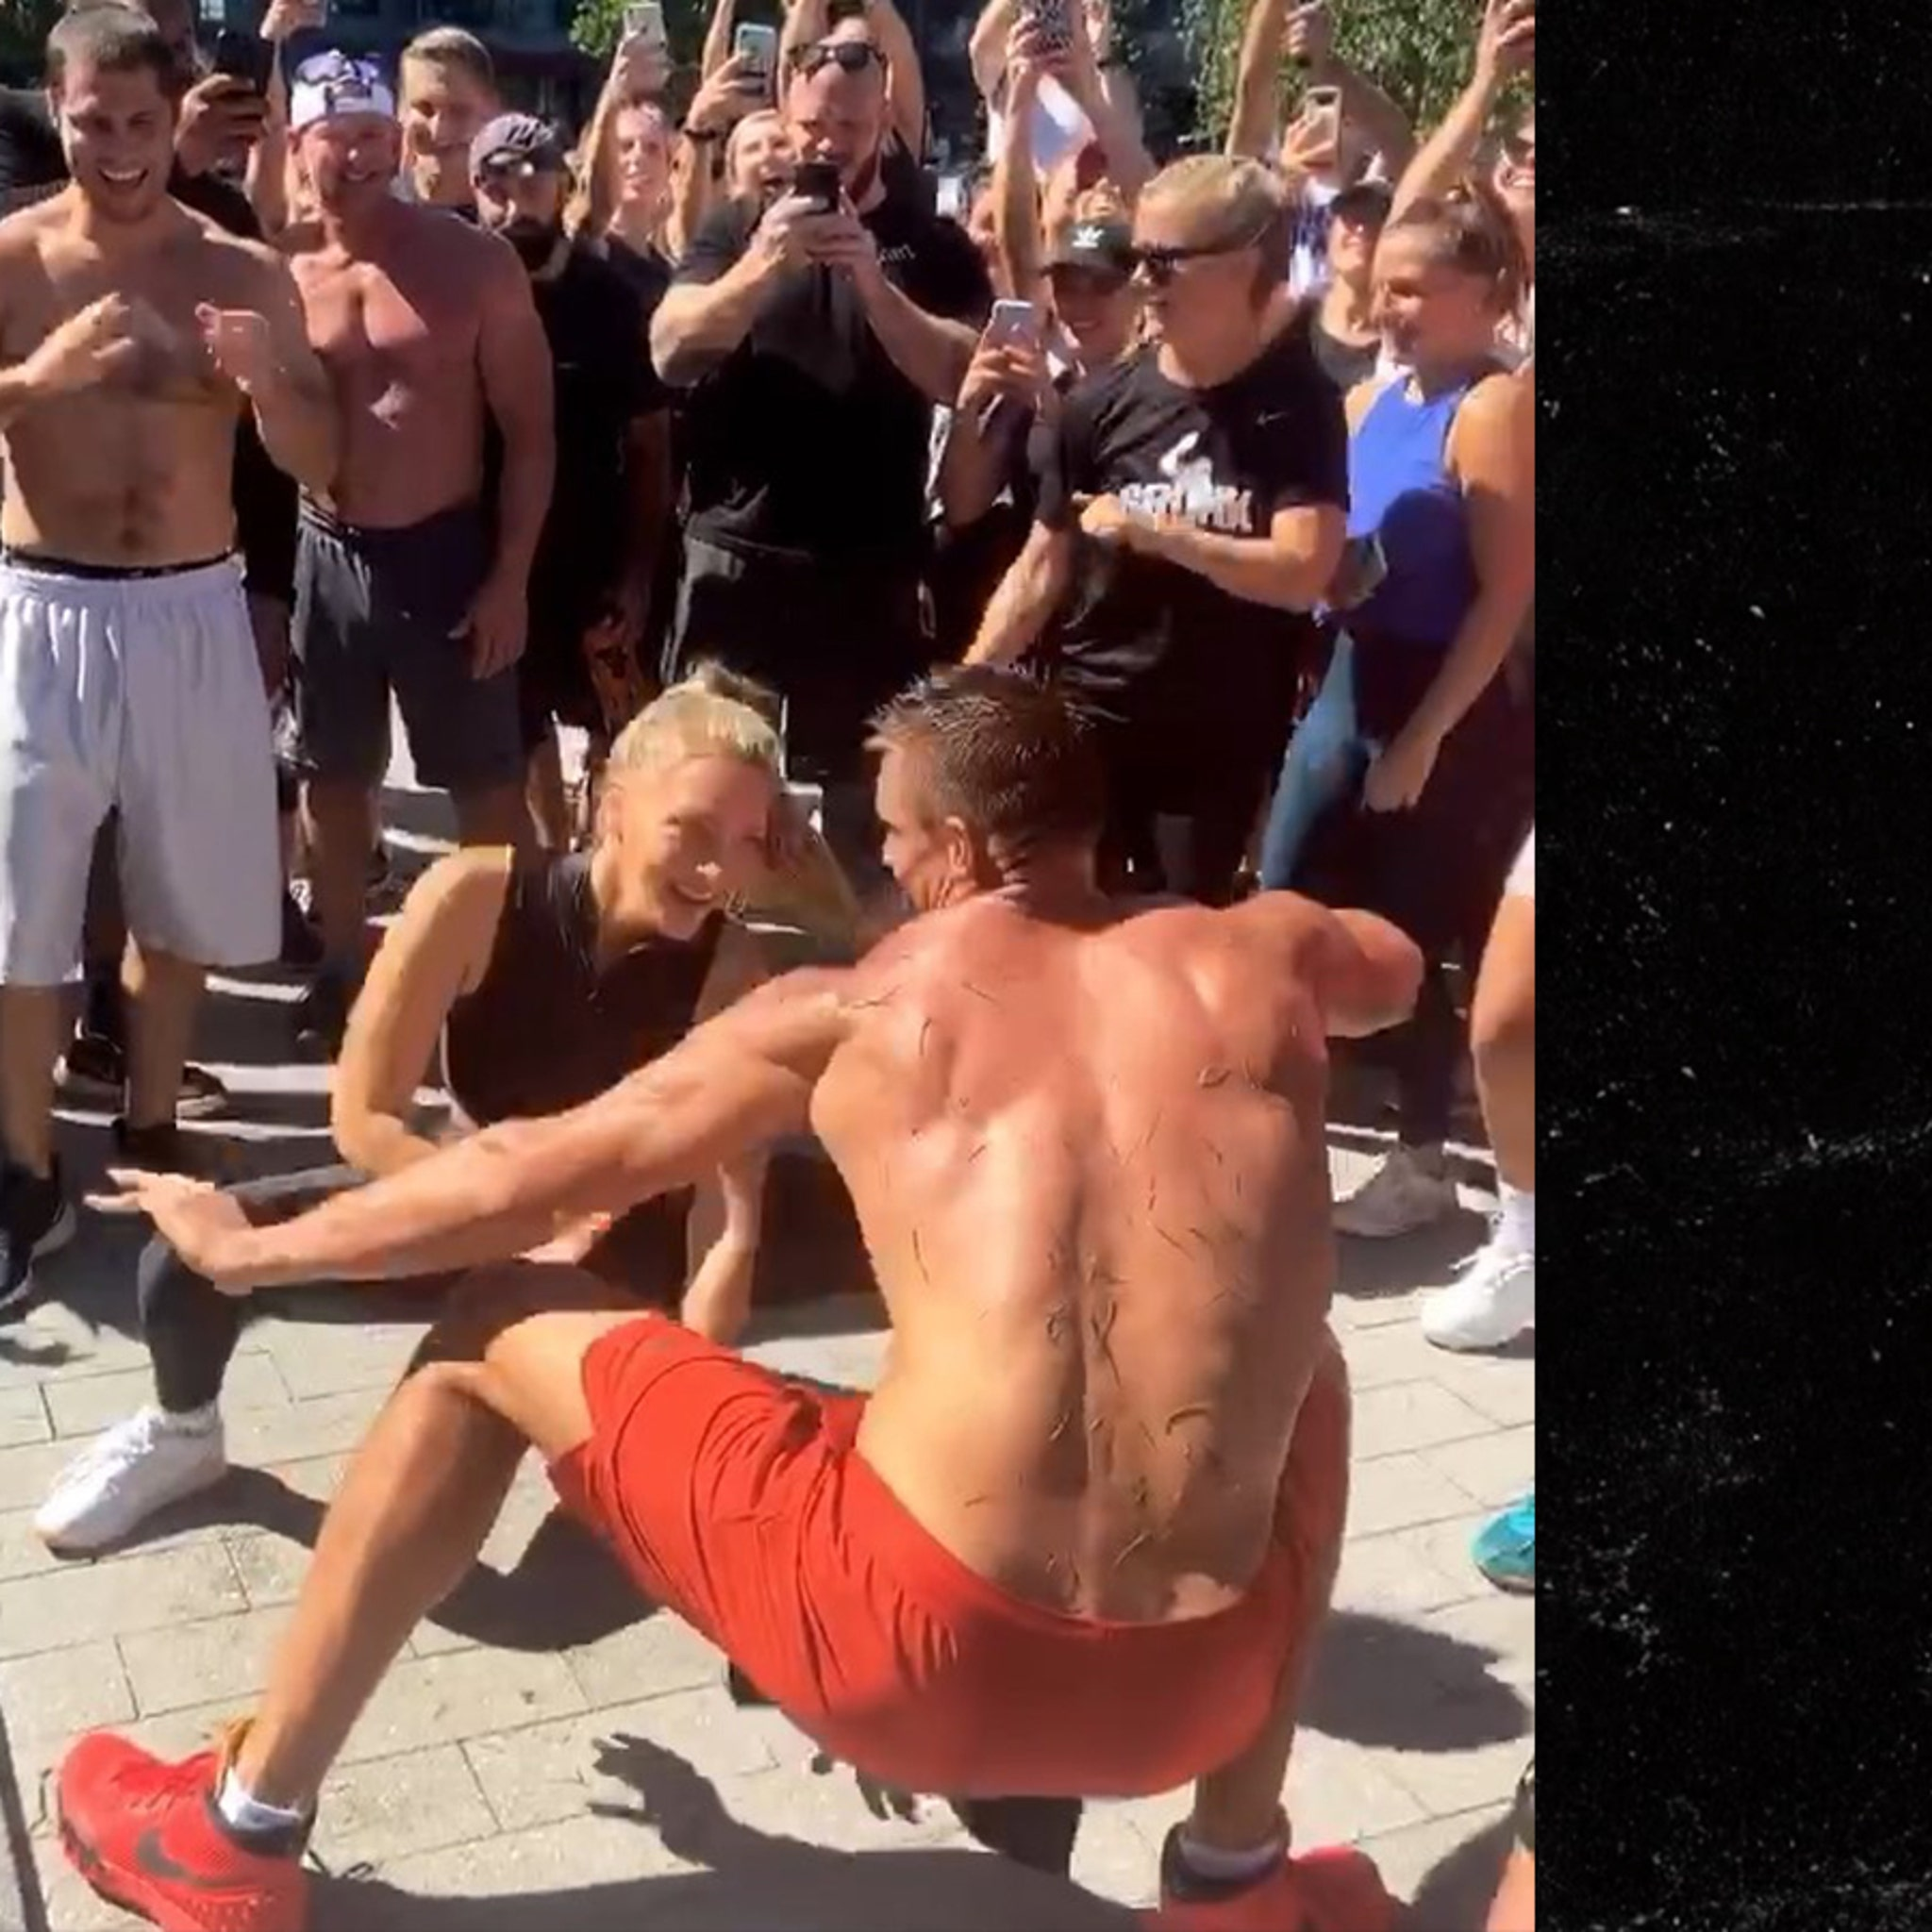 Rob Gronkowski and Camille Kostek Booty Shake to Stay Busy on NFL Sunday